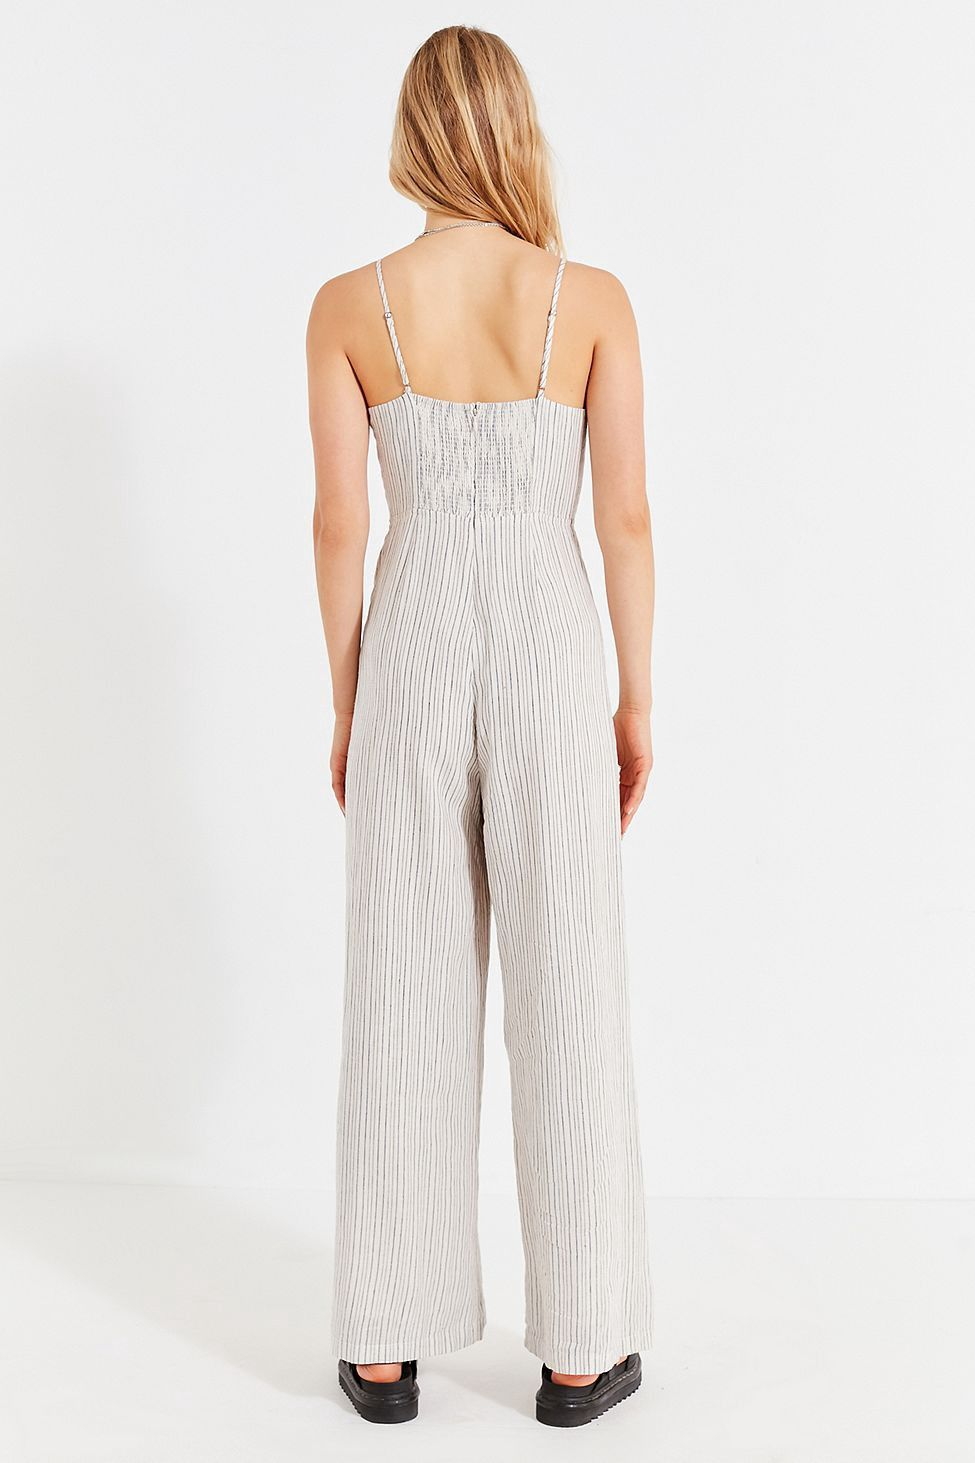 7d09d5532ff1 Urban Outfitters Uo Straight-Neck Linen Button-Down Jumpsuit - Black +  White 2